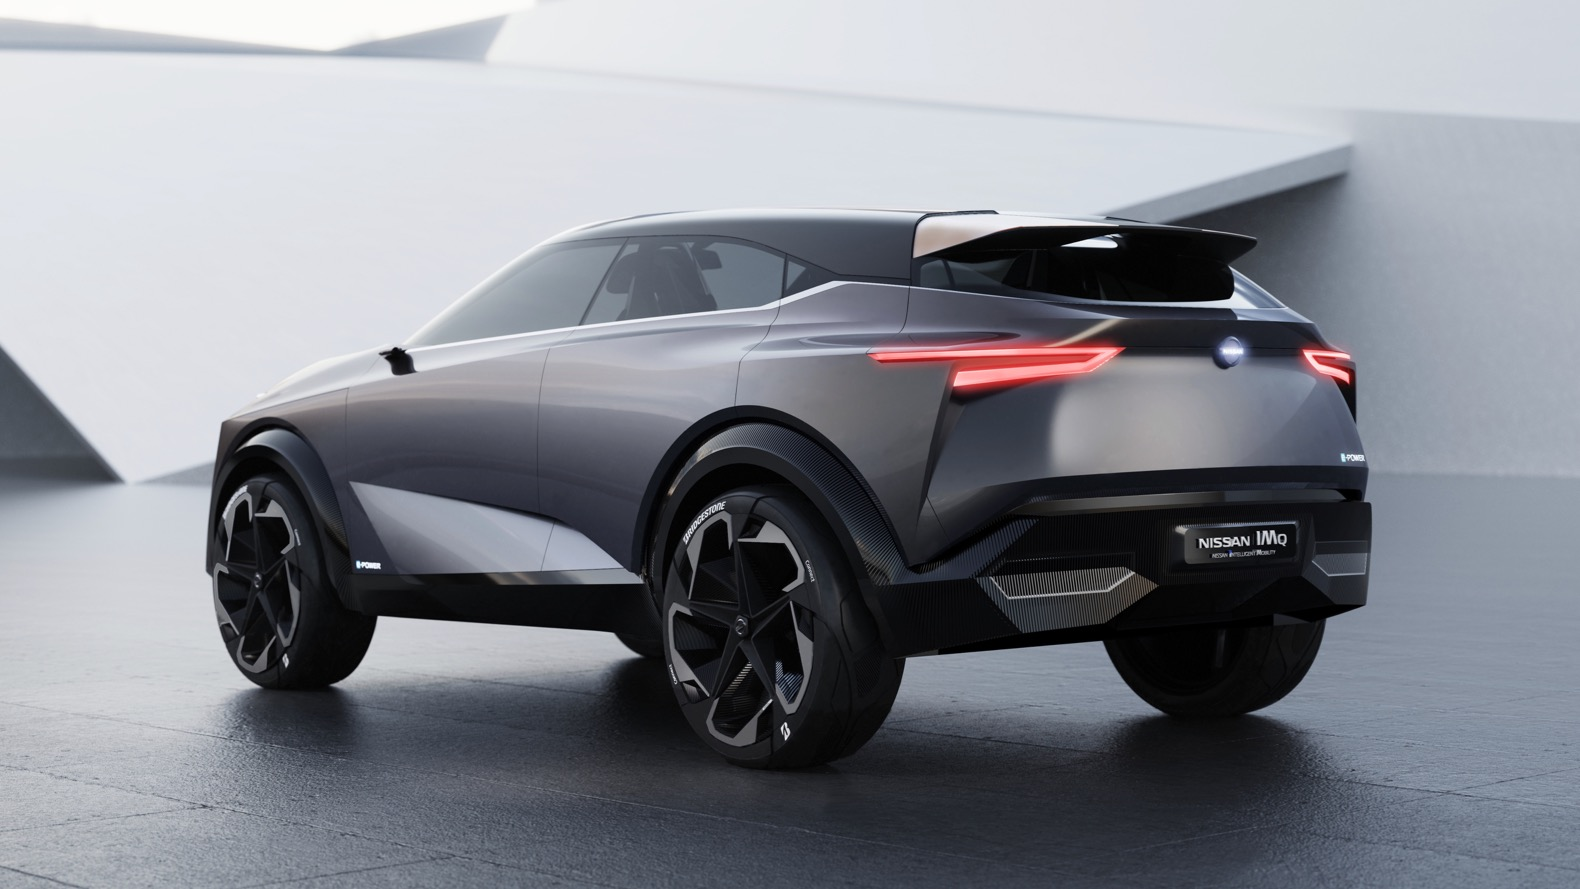 Nissan IMQ concept hints at a new electric SUV | The ...